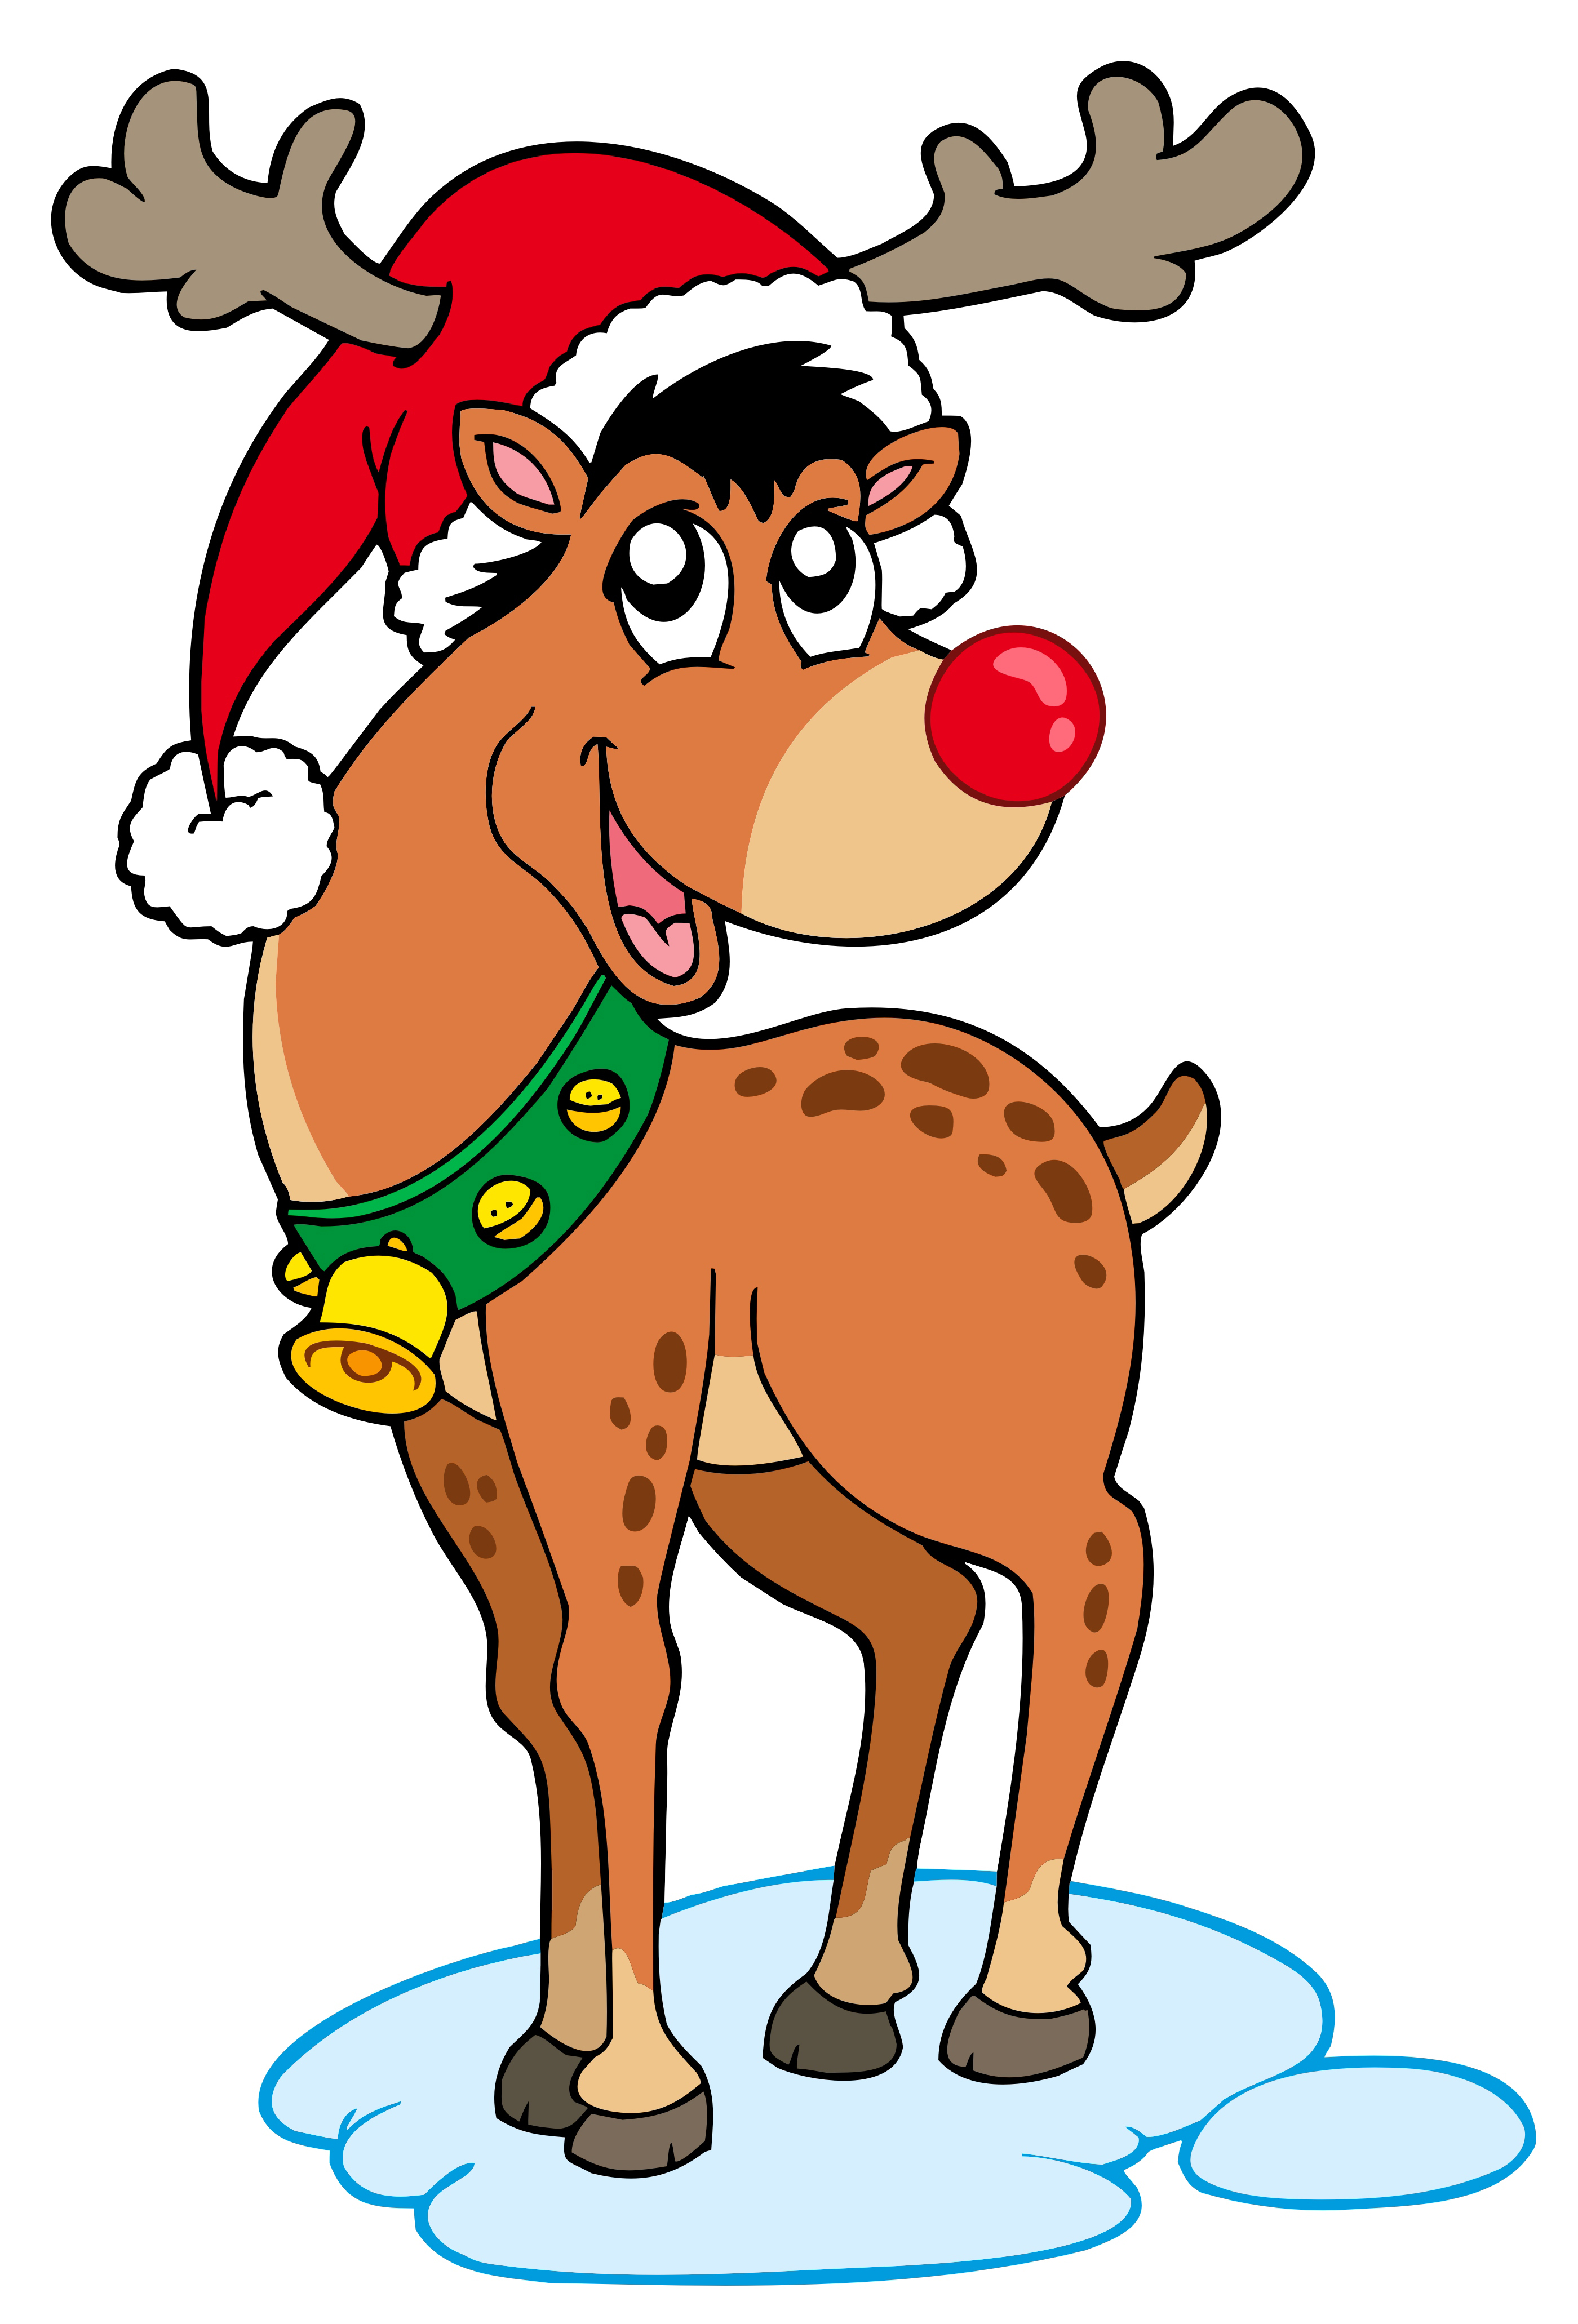 Flashing reindeer clipart clipart freeuse stock Santa Saves Christmas (a festive story) | Almost an opinion clipart freeuse stock